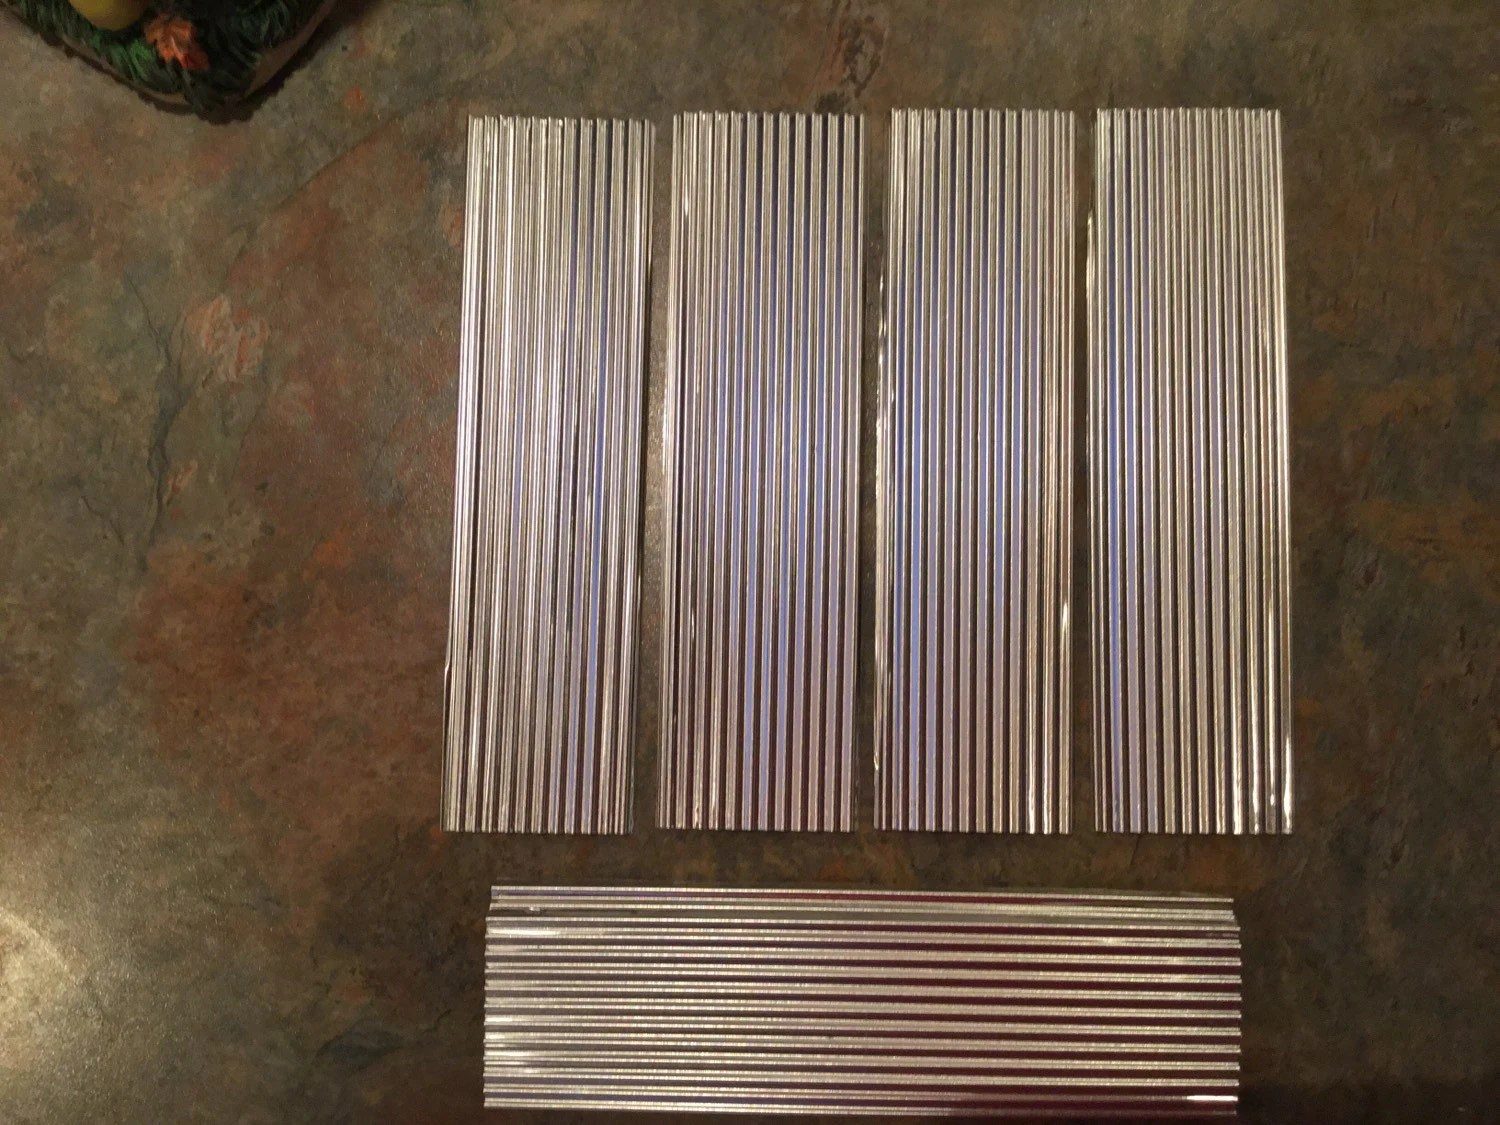 CORRUGATED METAL 12 Pc Set Roofing  Tin Craft Supplies for Bird Houses Weddings Model